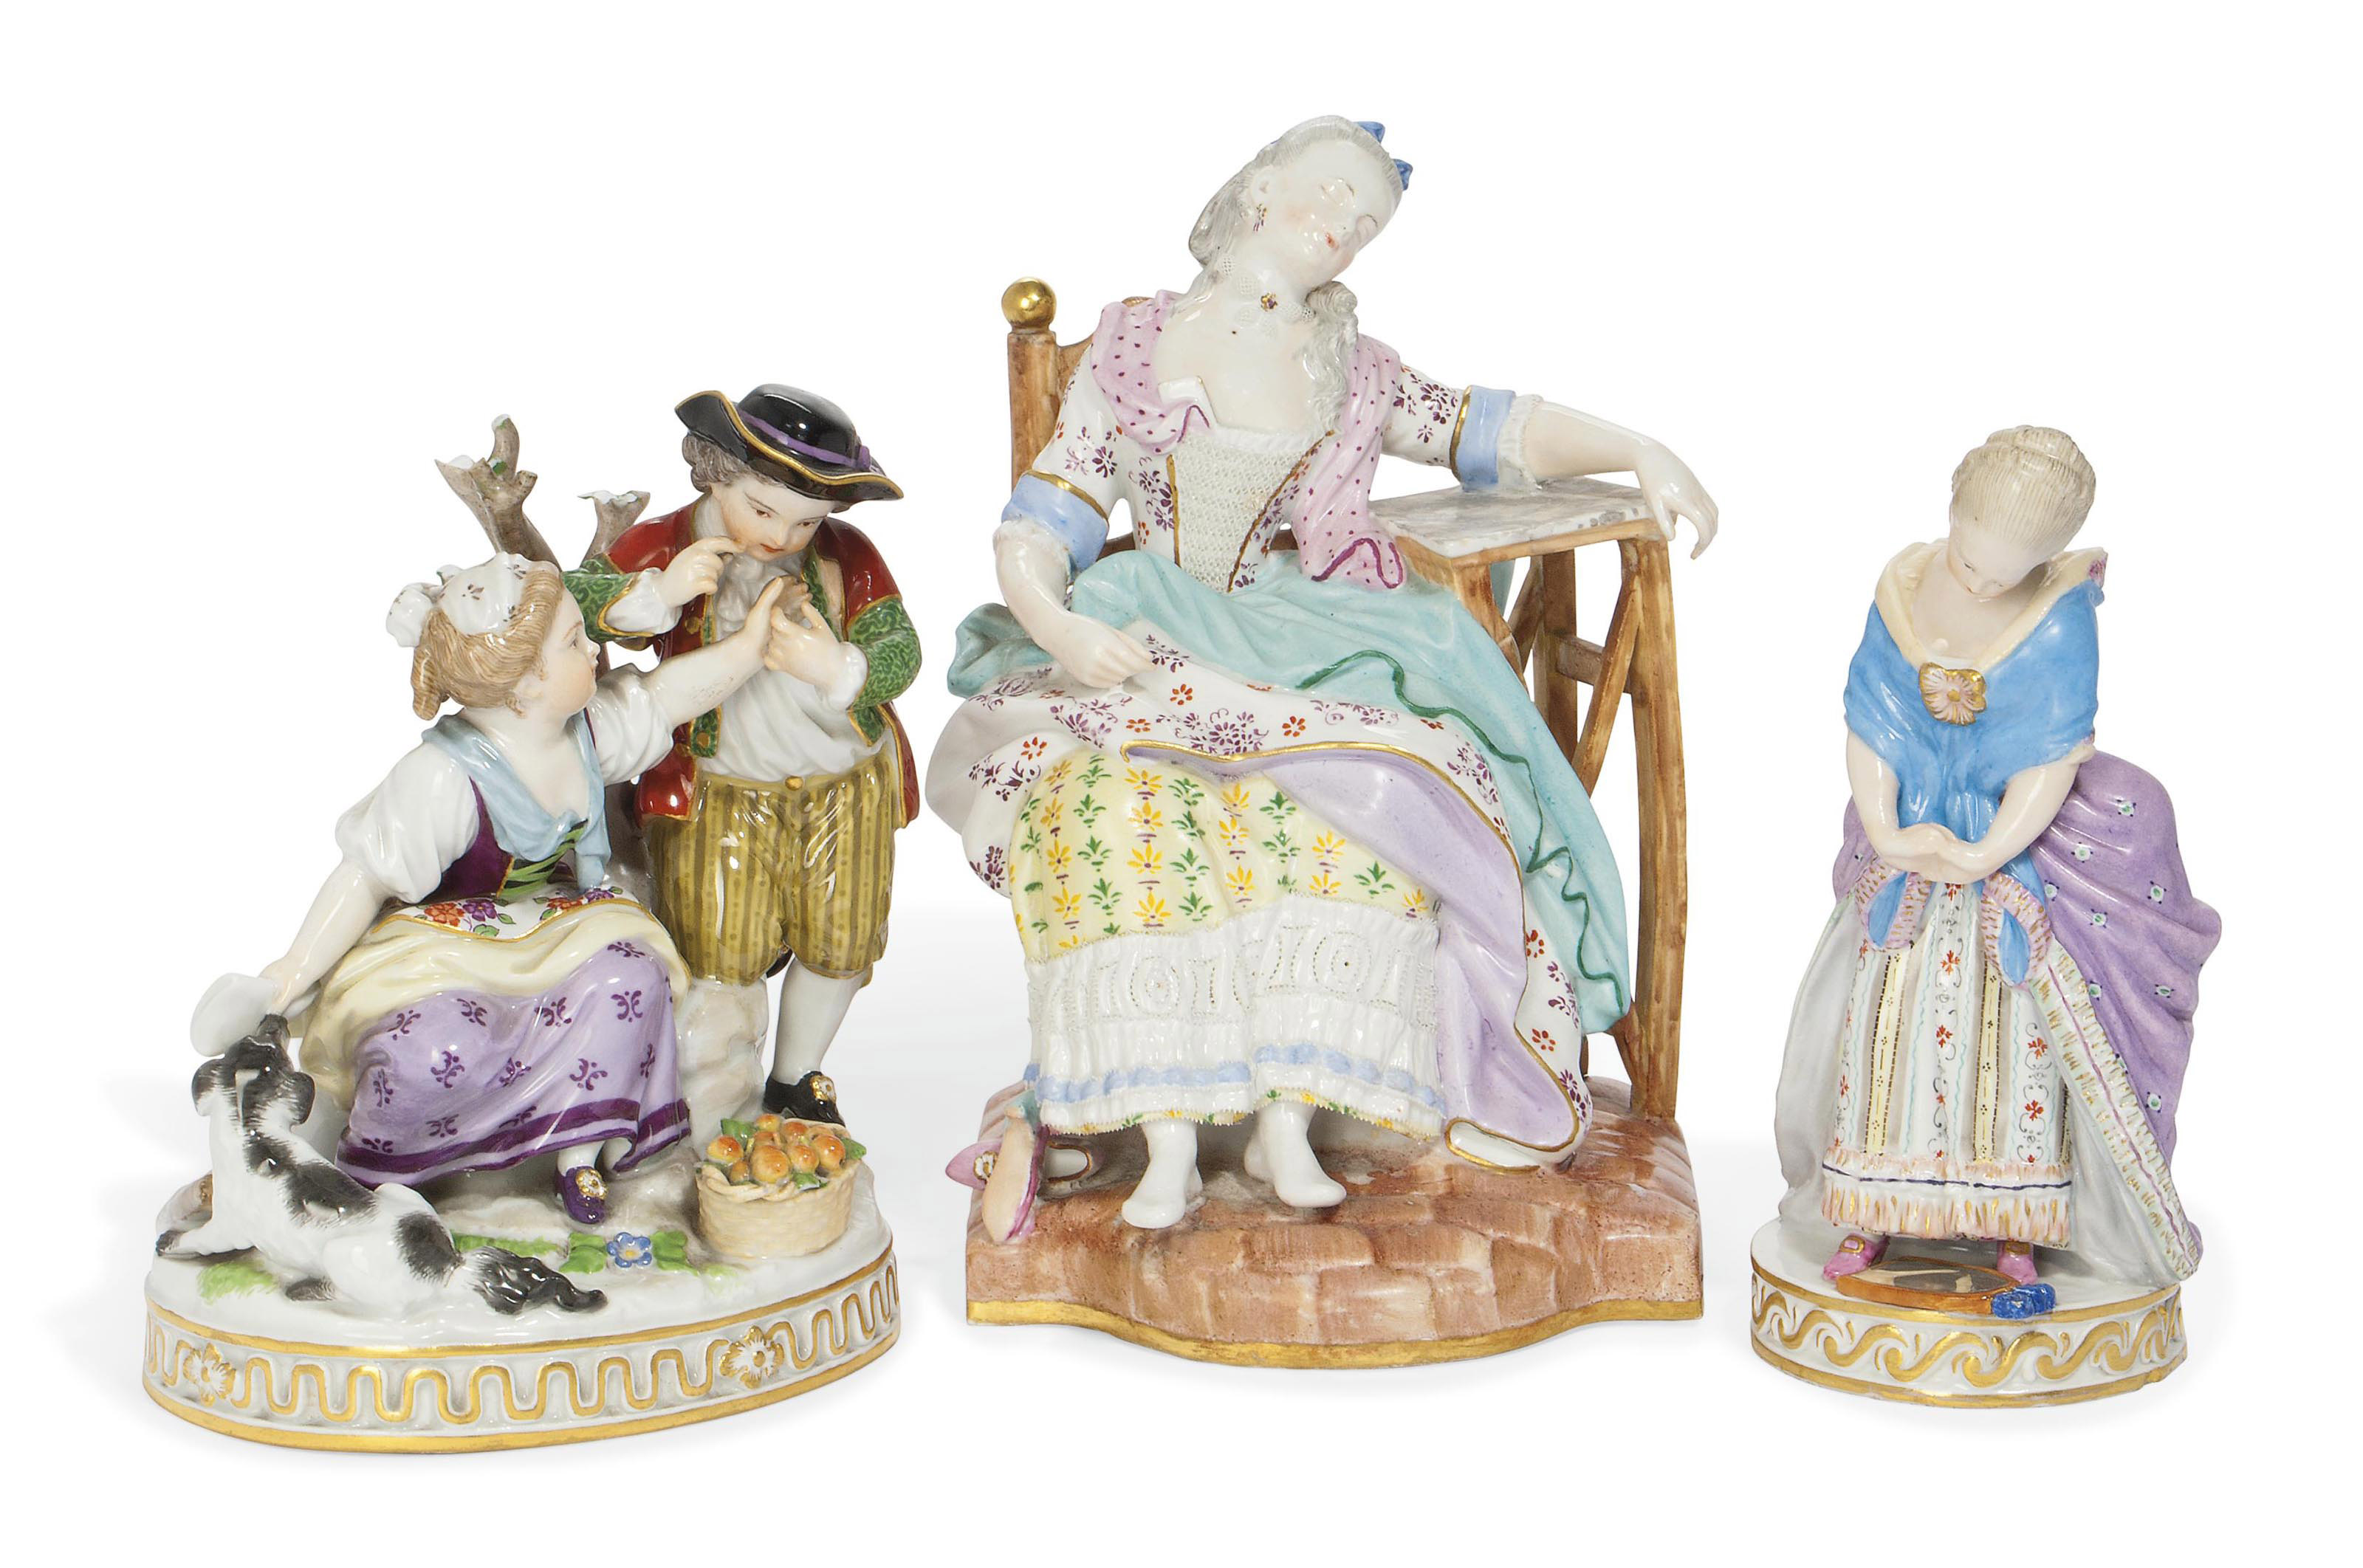 TWO MEISSEN FIGURES AND A FIGU